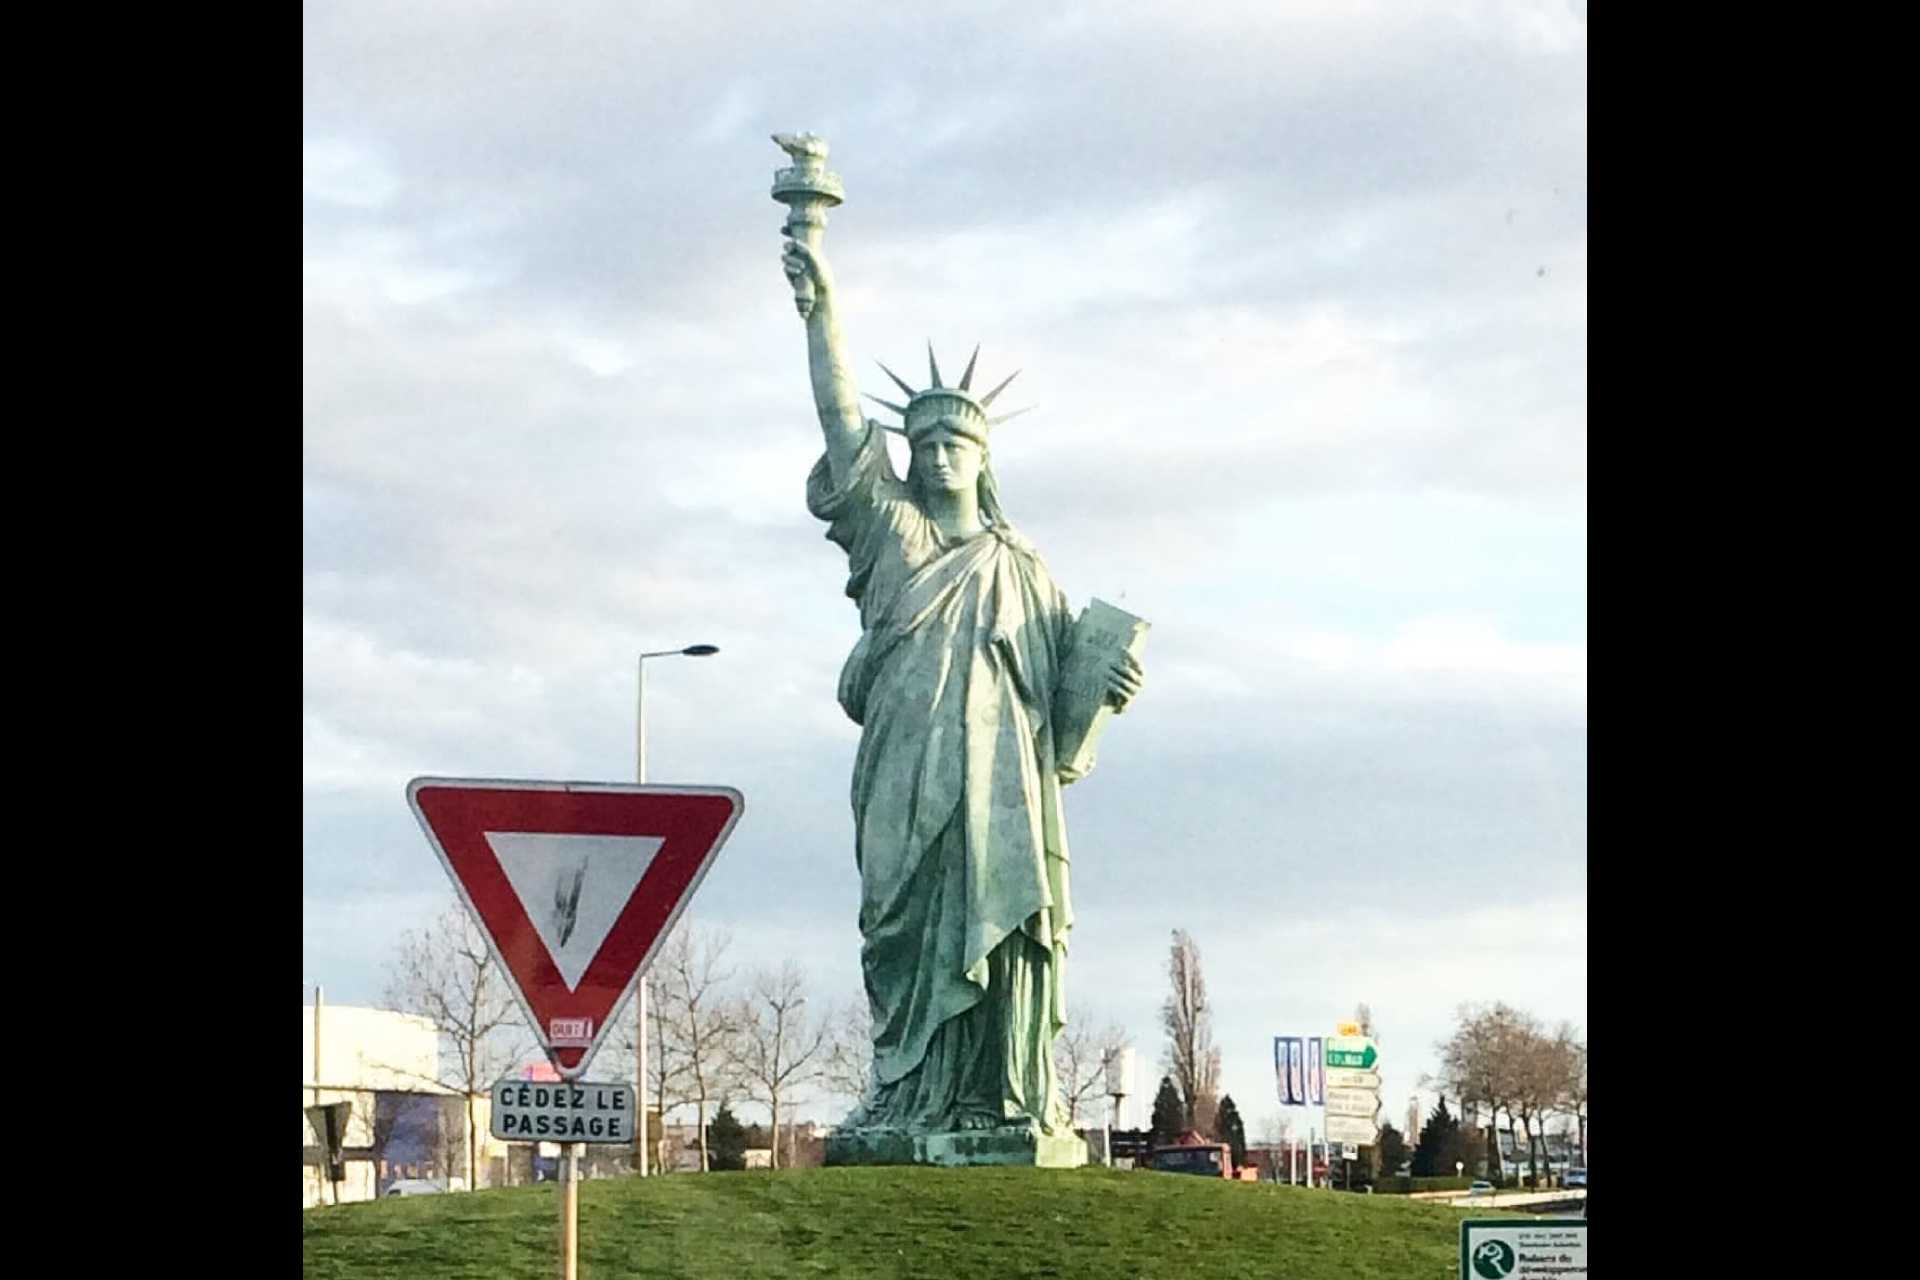 "12-meter high replica of the Statue of Liberty. It was sculpted to commemorate the 100th death anniversary of the sculptor Auguste Batholdi, who was born in Colmar and created the ""Liberty lightening the world"". Took this photo on a bus ride coming into Colmar."